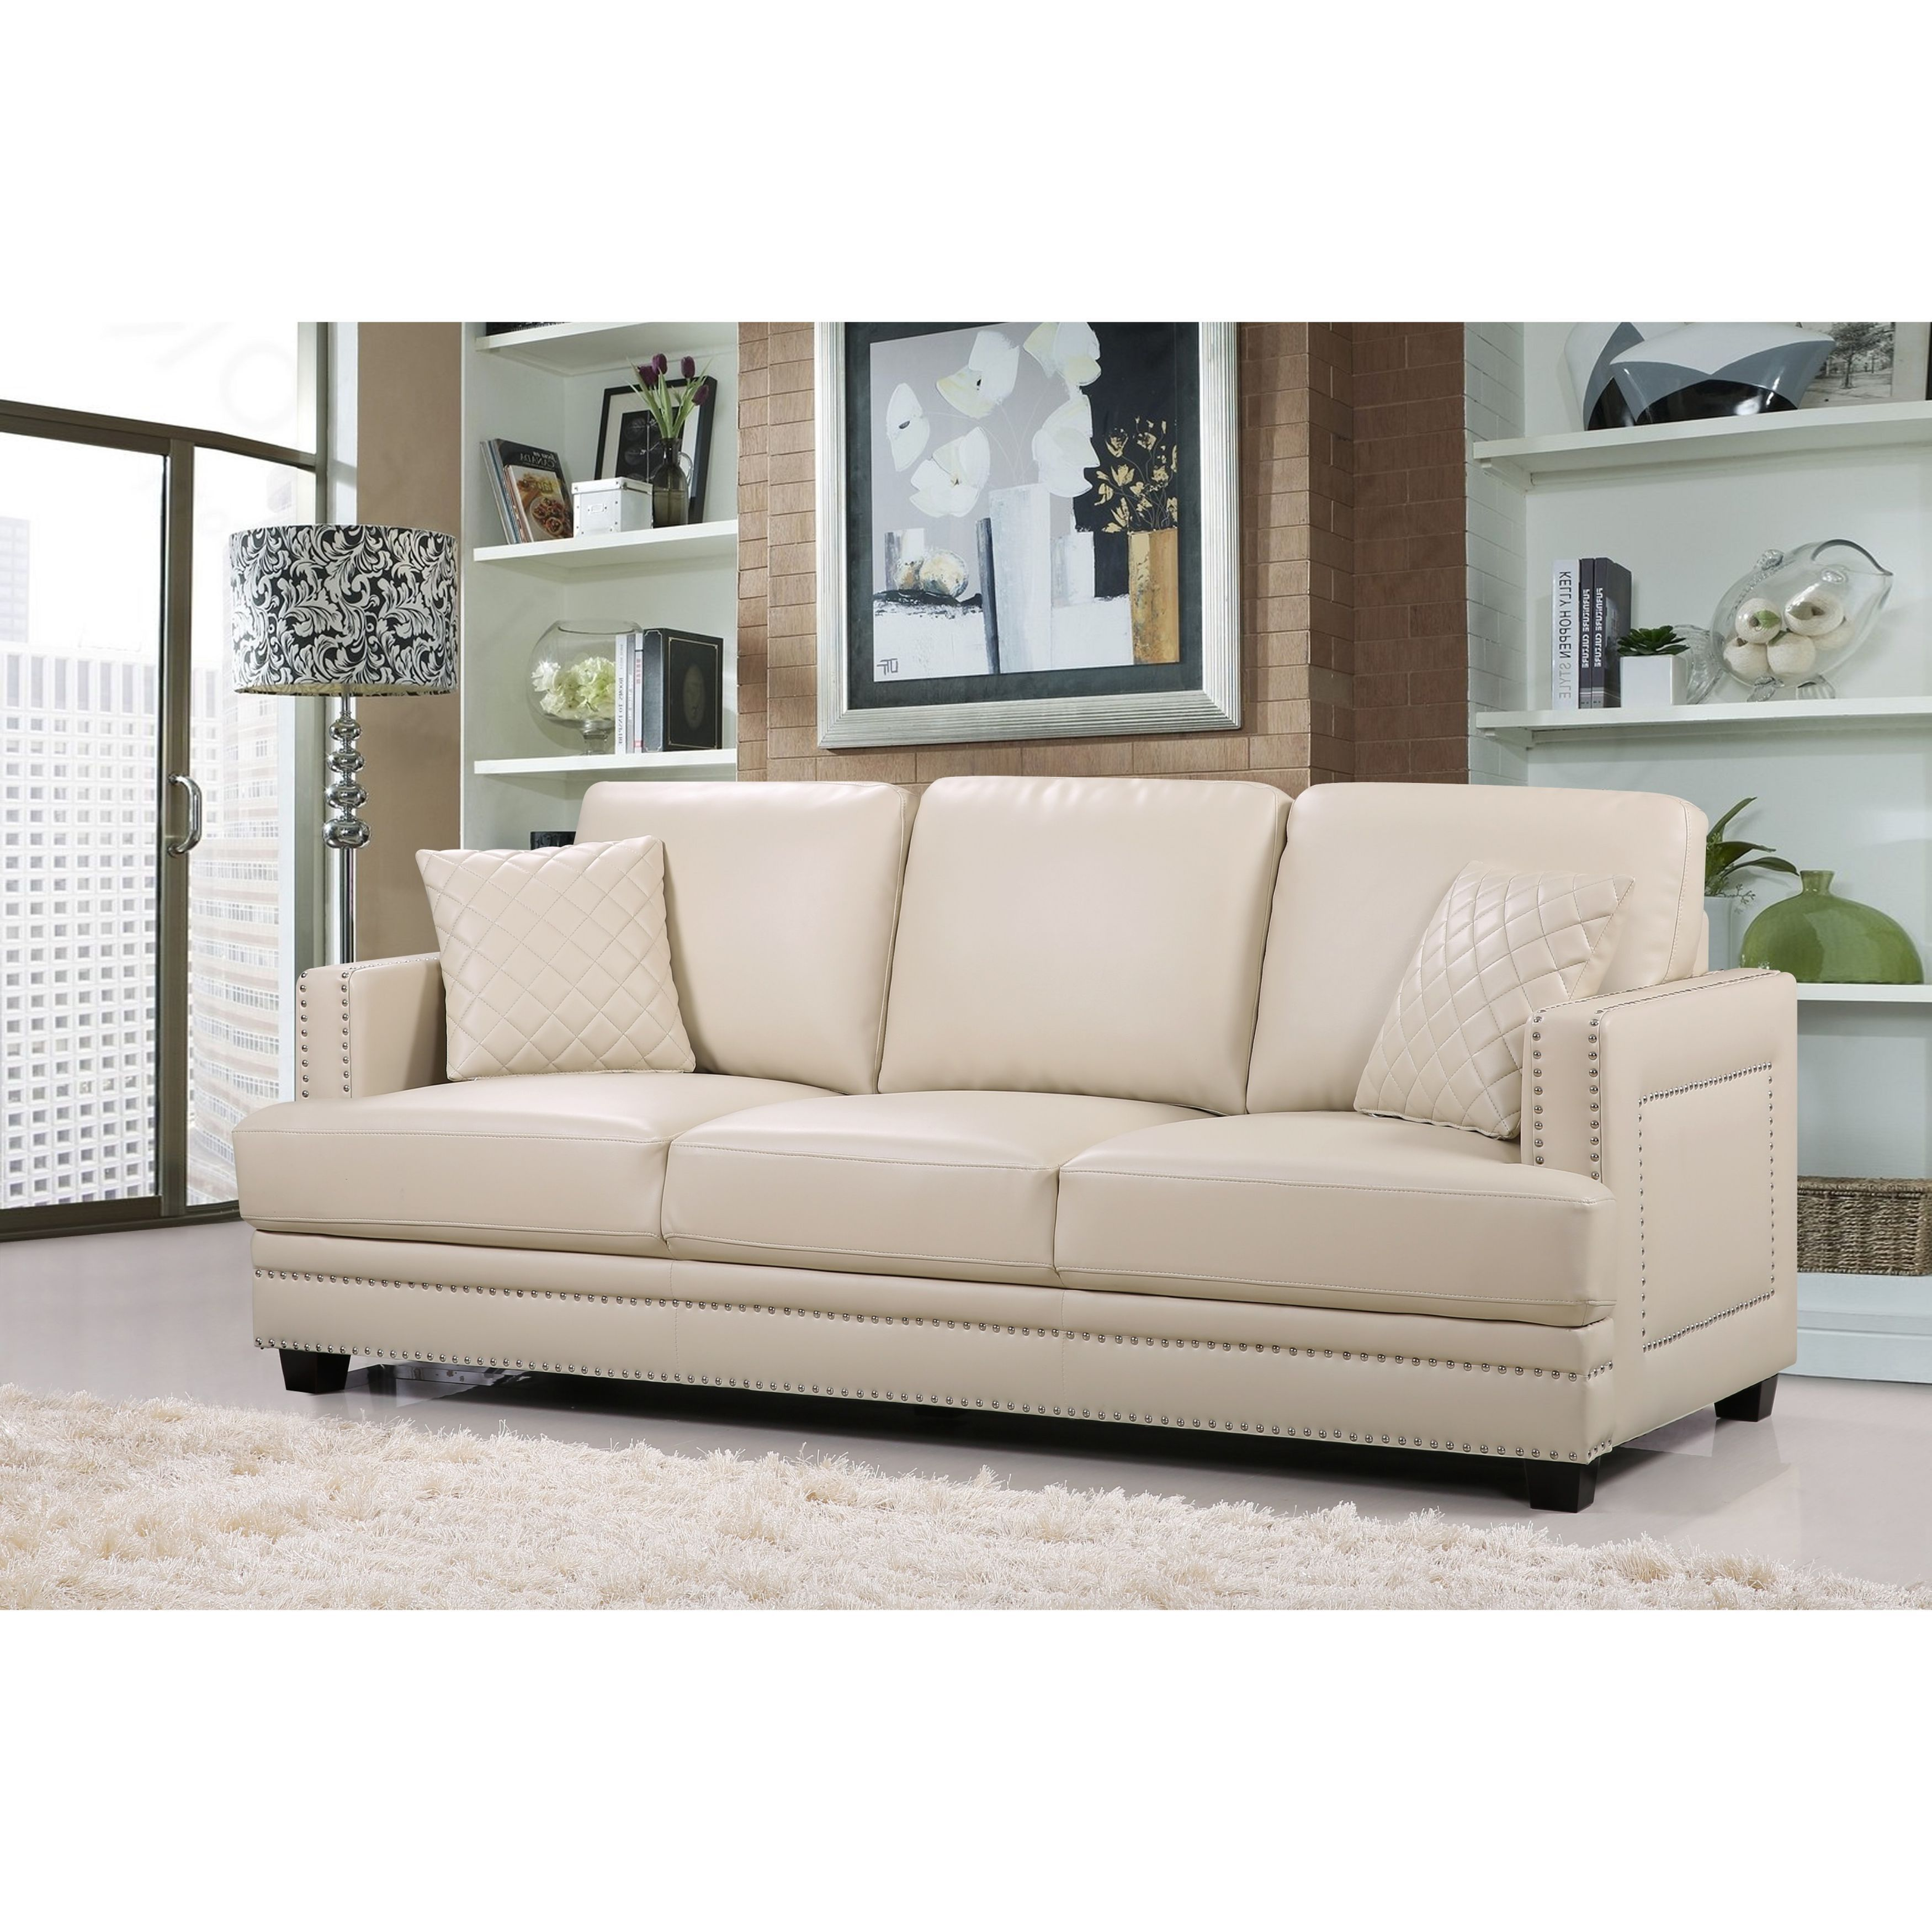 Shop Ferrara Beige Leather Nailhead Sofa   Free Shipping Today    Overstock.com   11023835